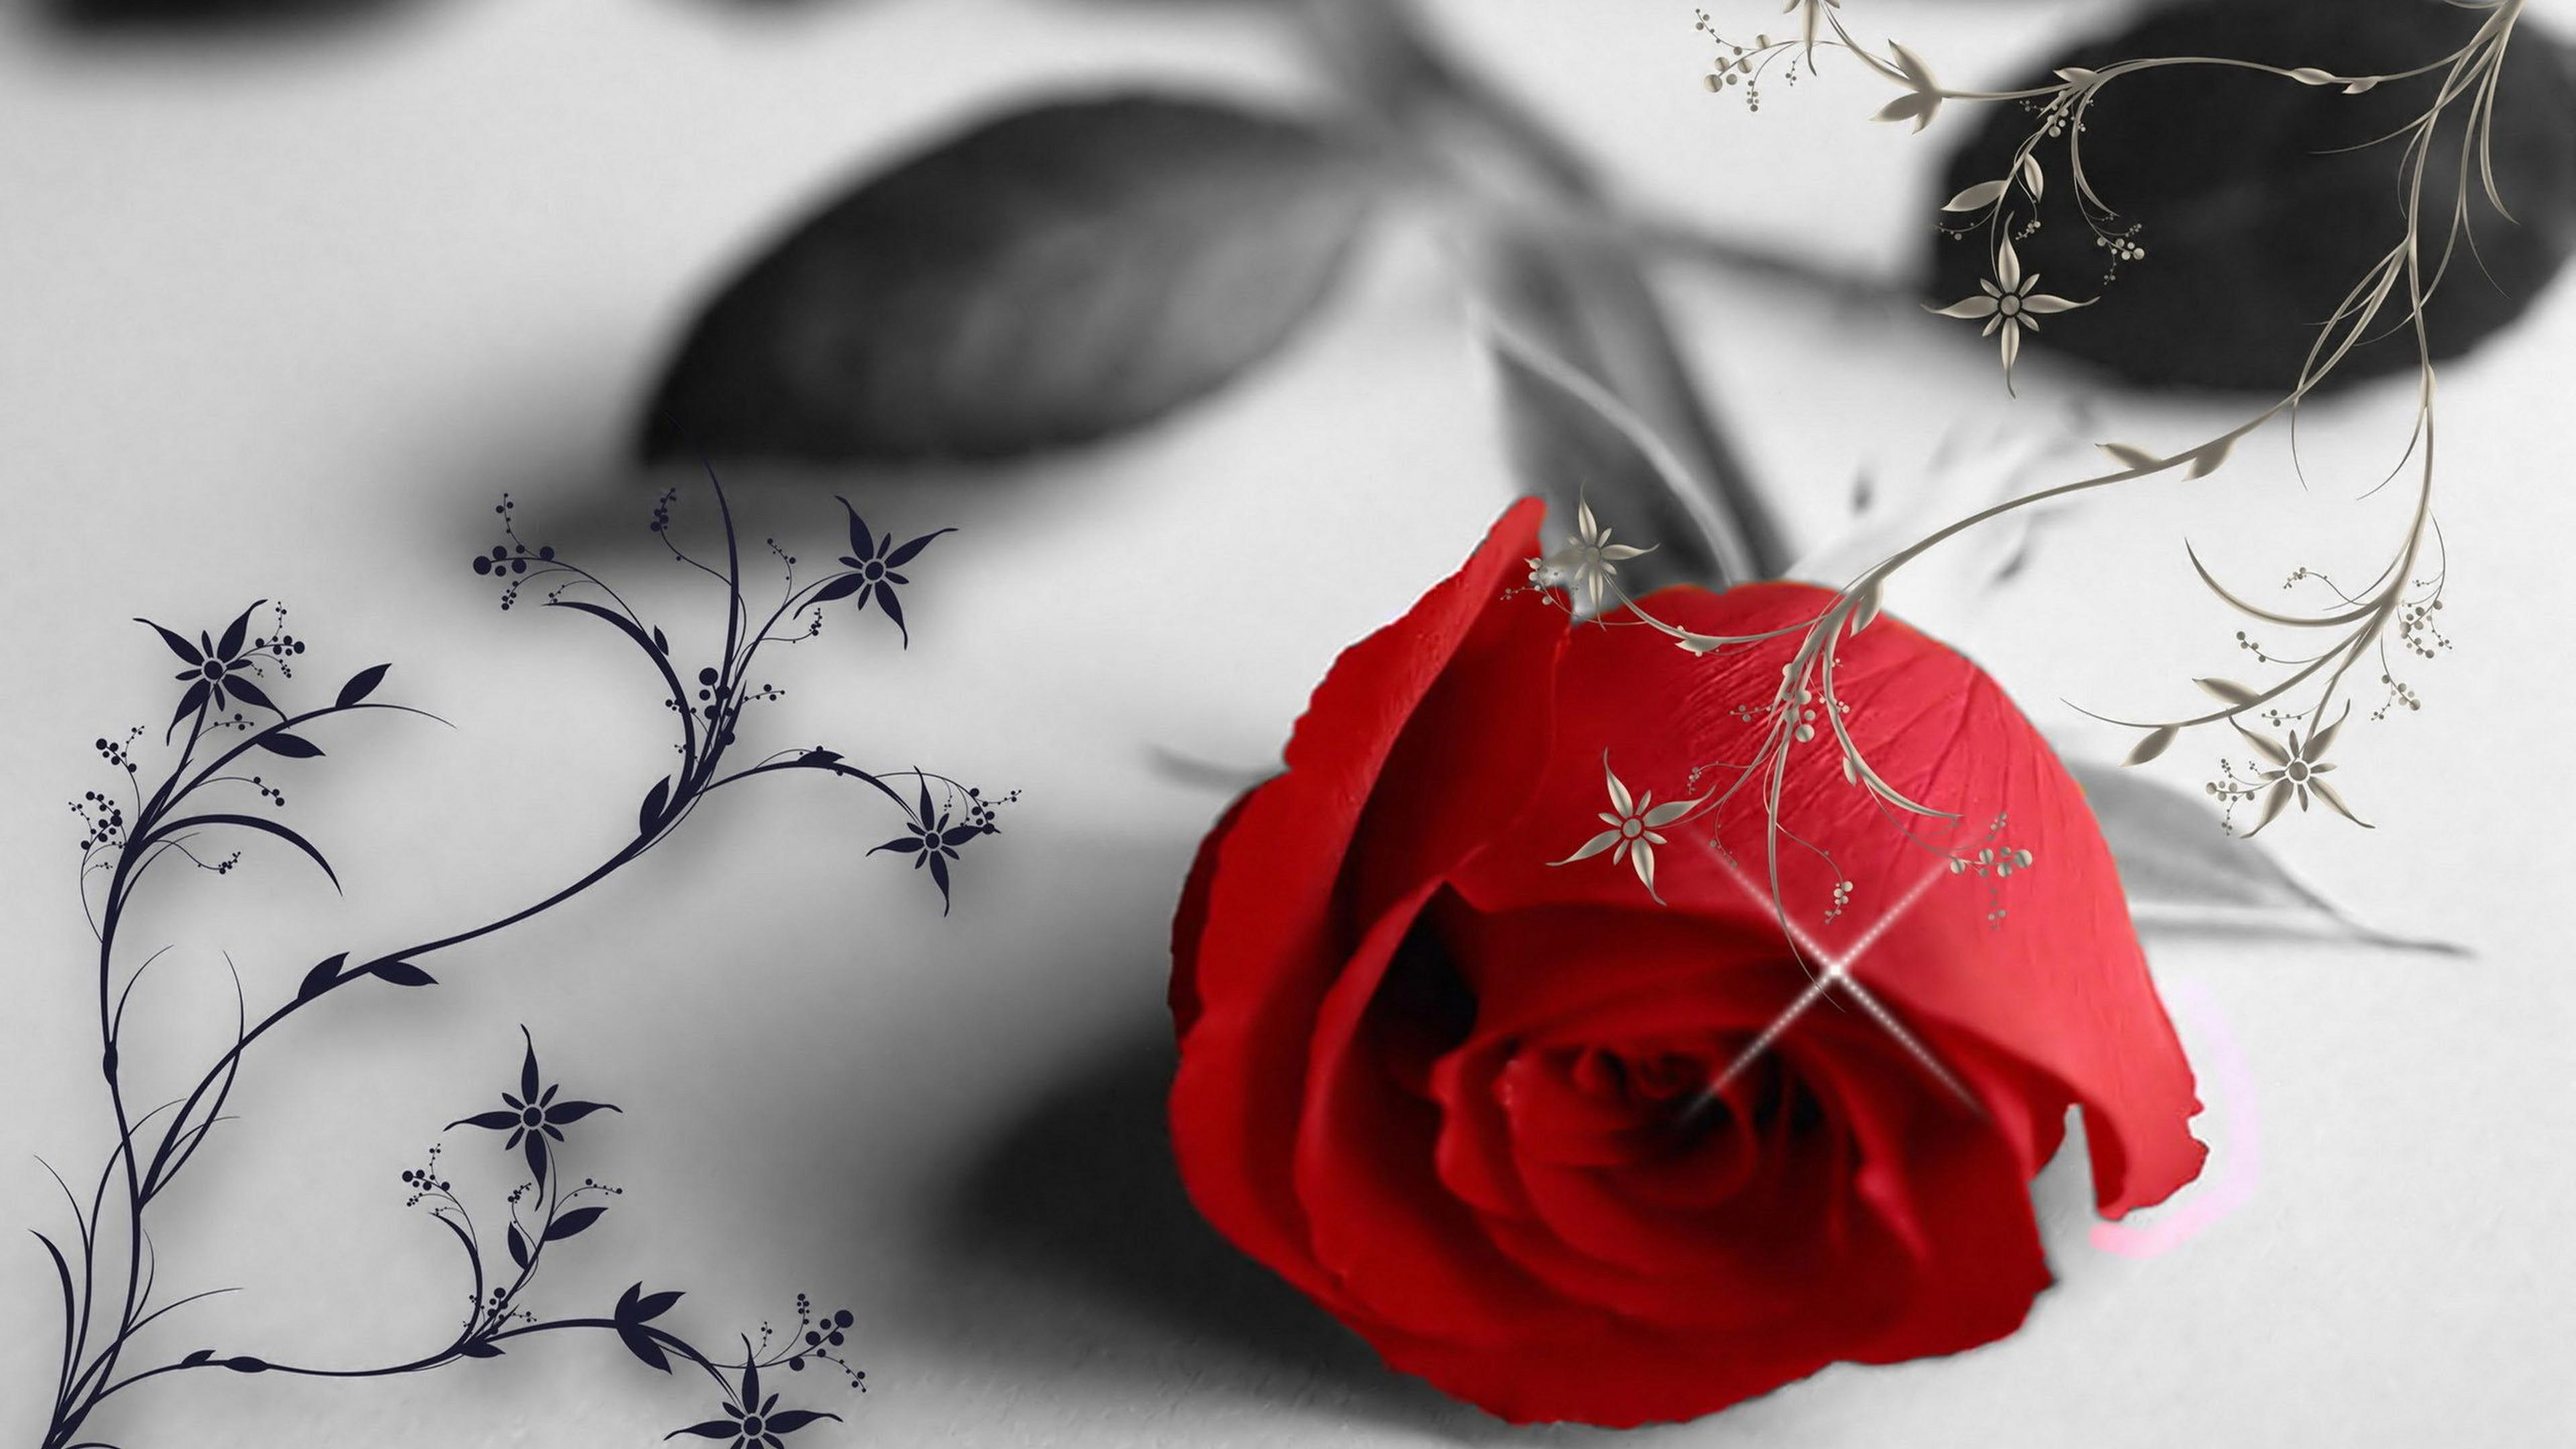 Must see Wallpaper Black And White Romantic - red-rose-in-a-black-and-white-wallpaper-love-moments-3840x2160  Pic_457874.jpg